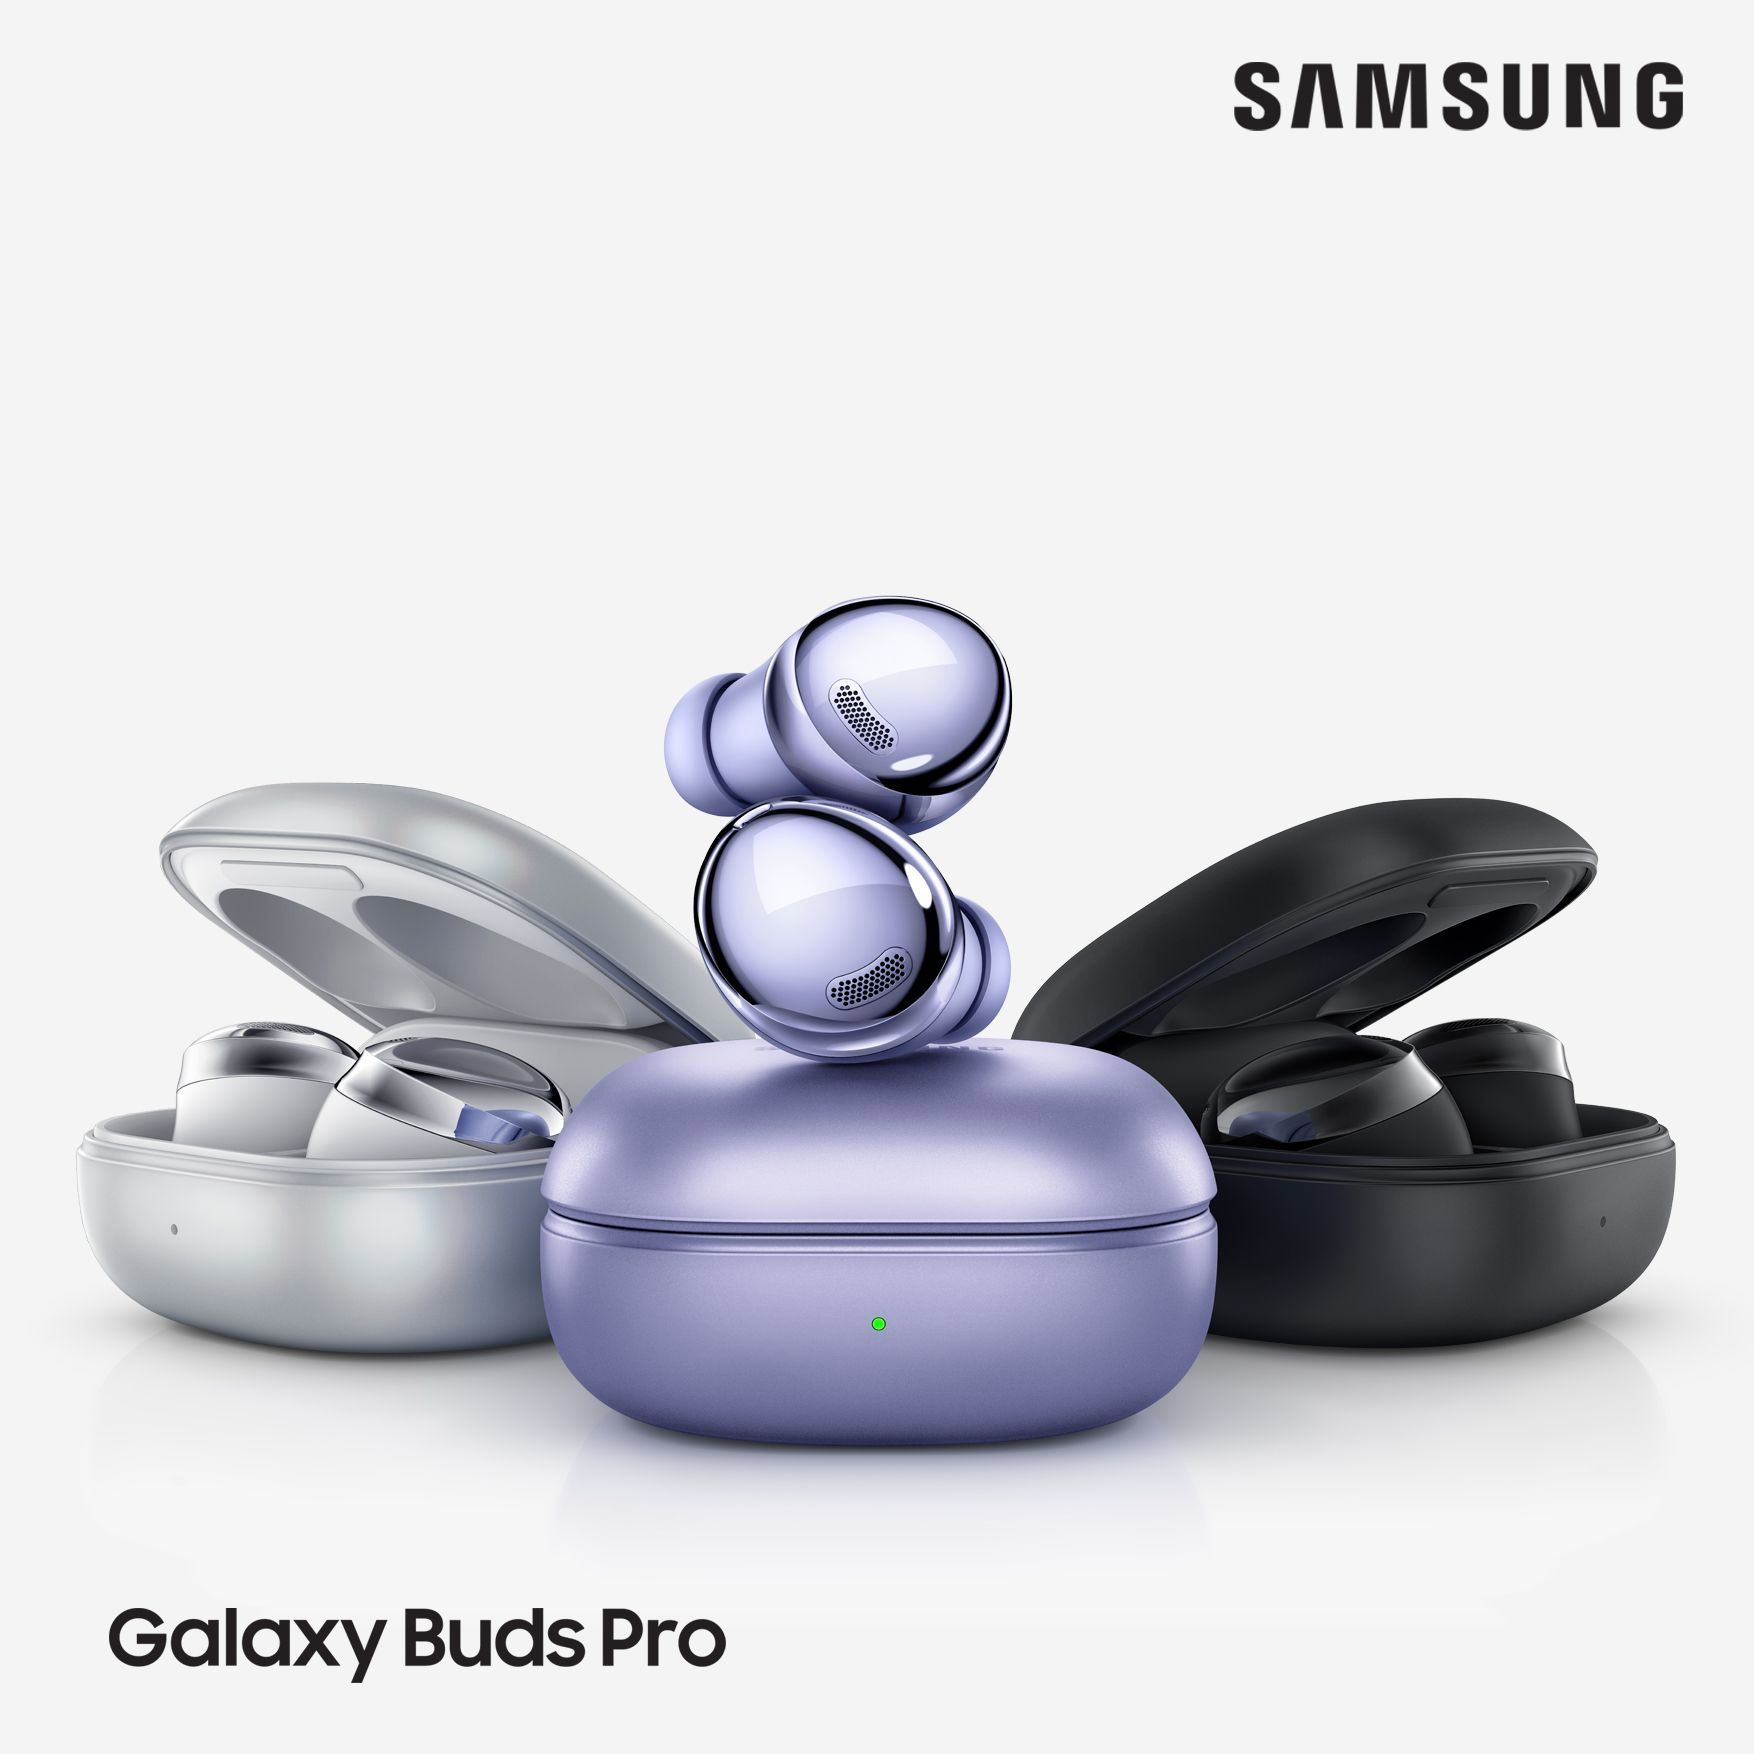 The new Samsung Galaxy Buds Pro